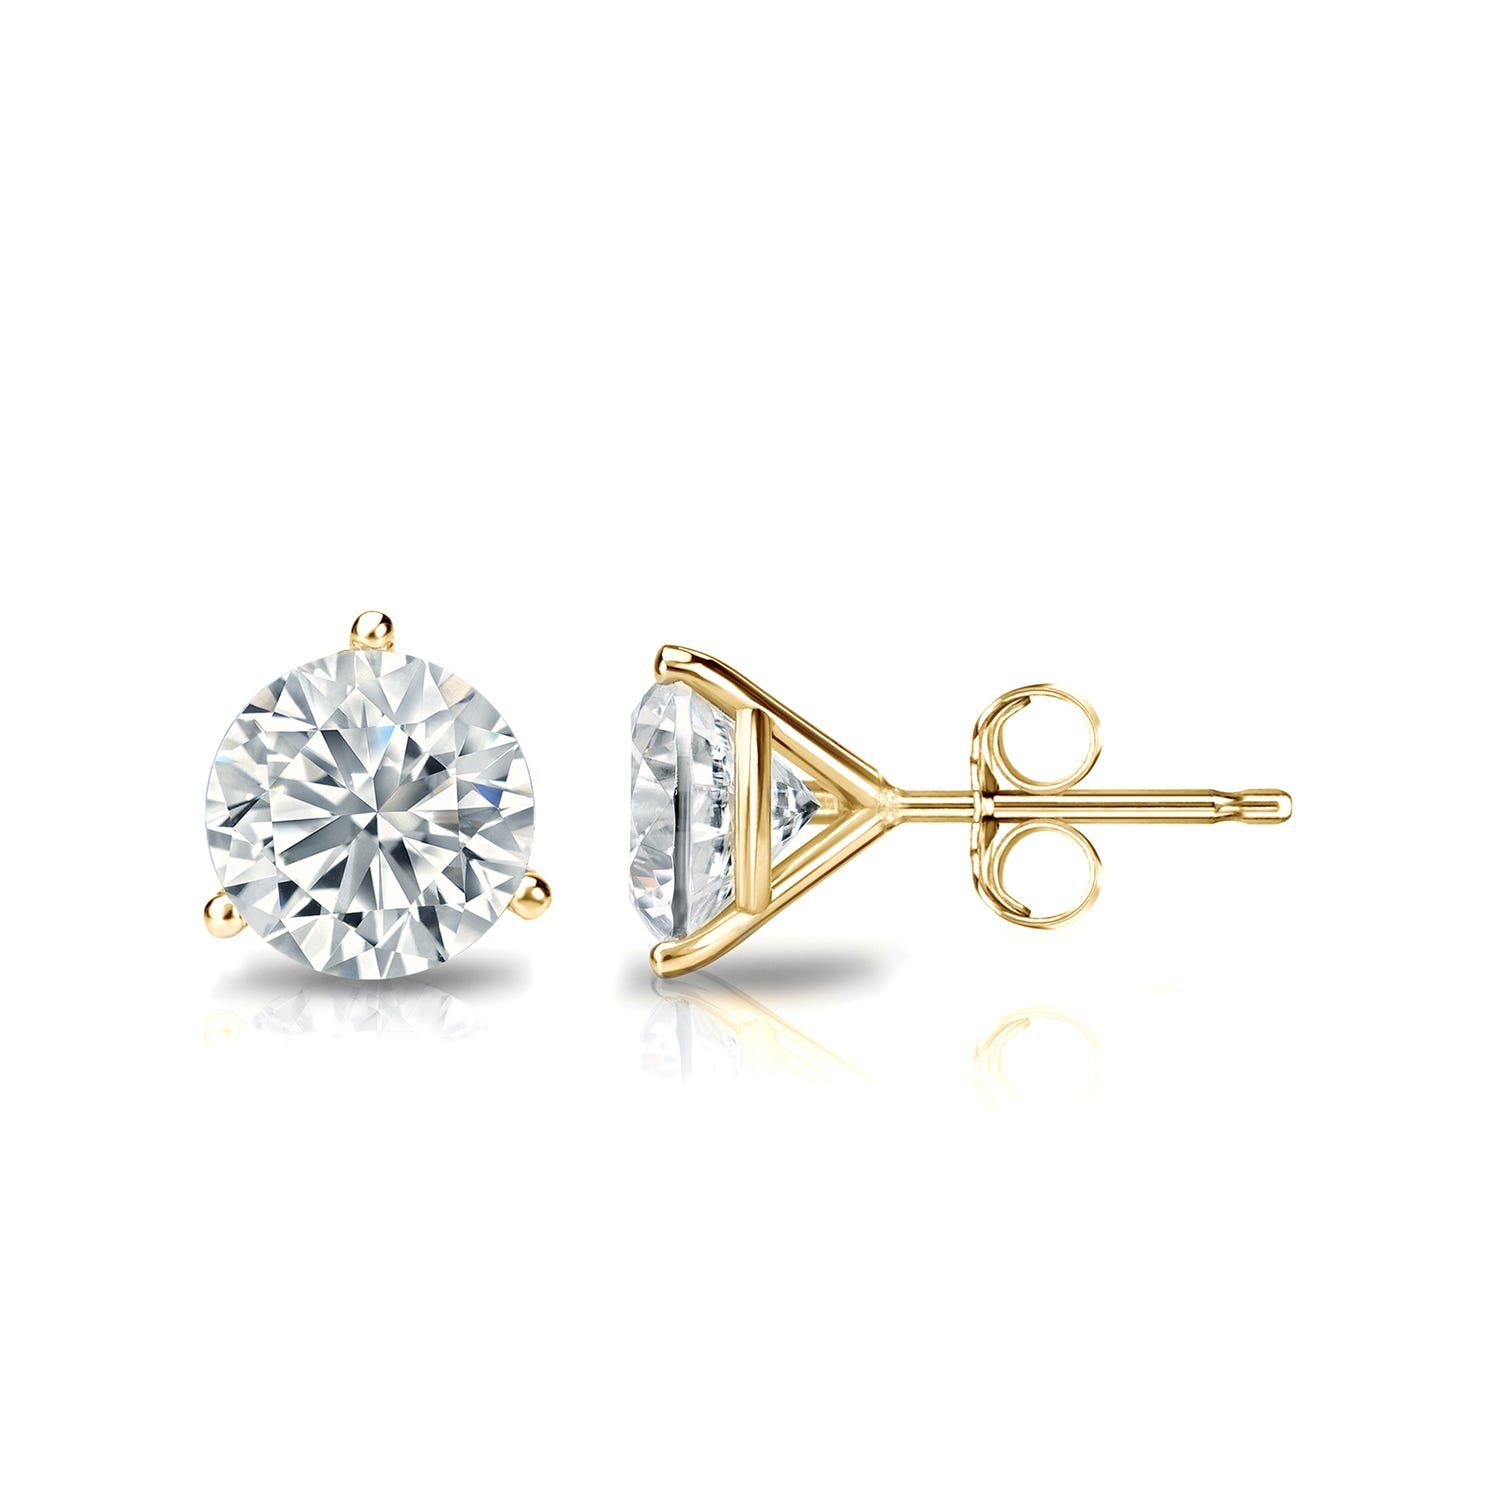 1 CTTW Round Diamond Solitaire Stud Earrings IJ I1 in 14K Yellow Gold IGI Certified 3-Prong Setting